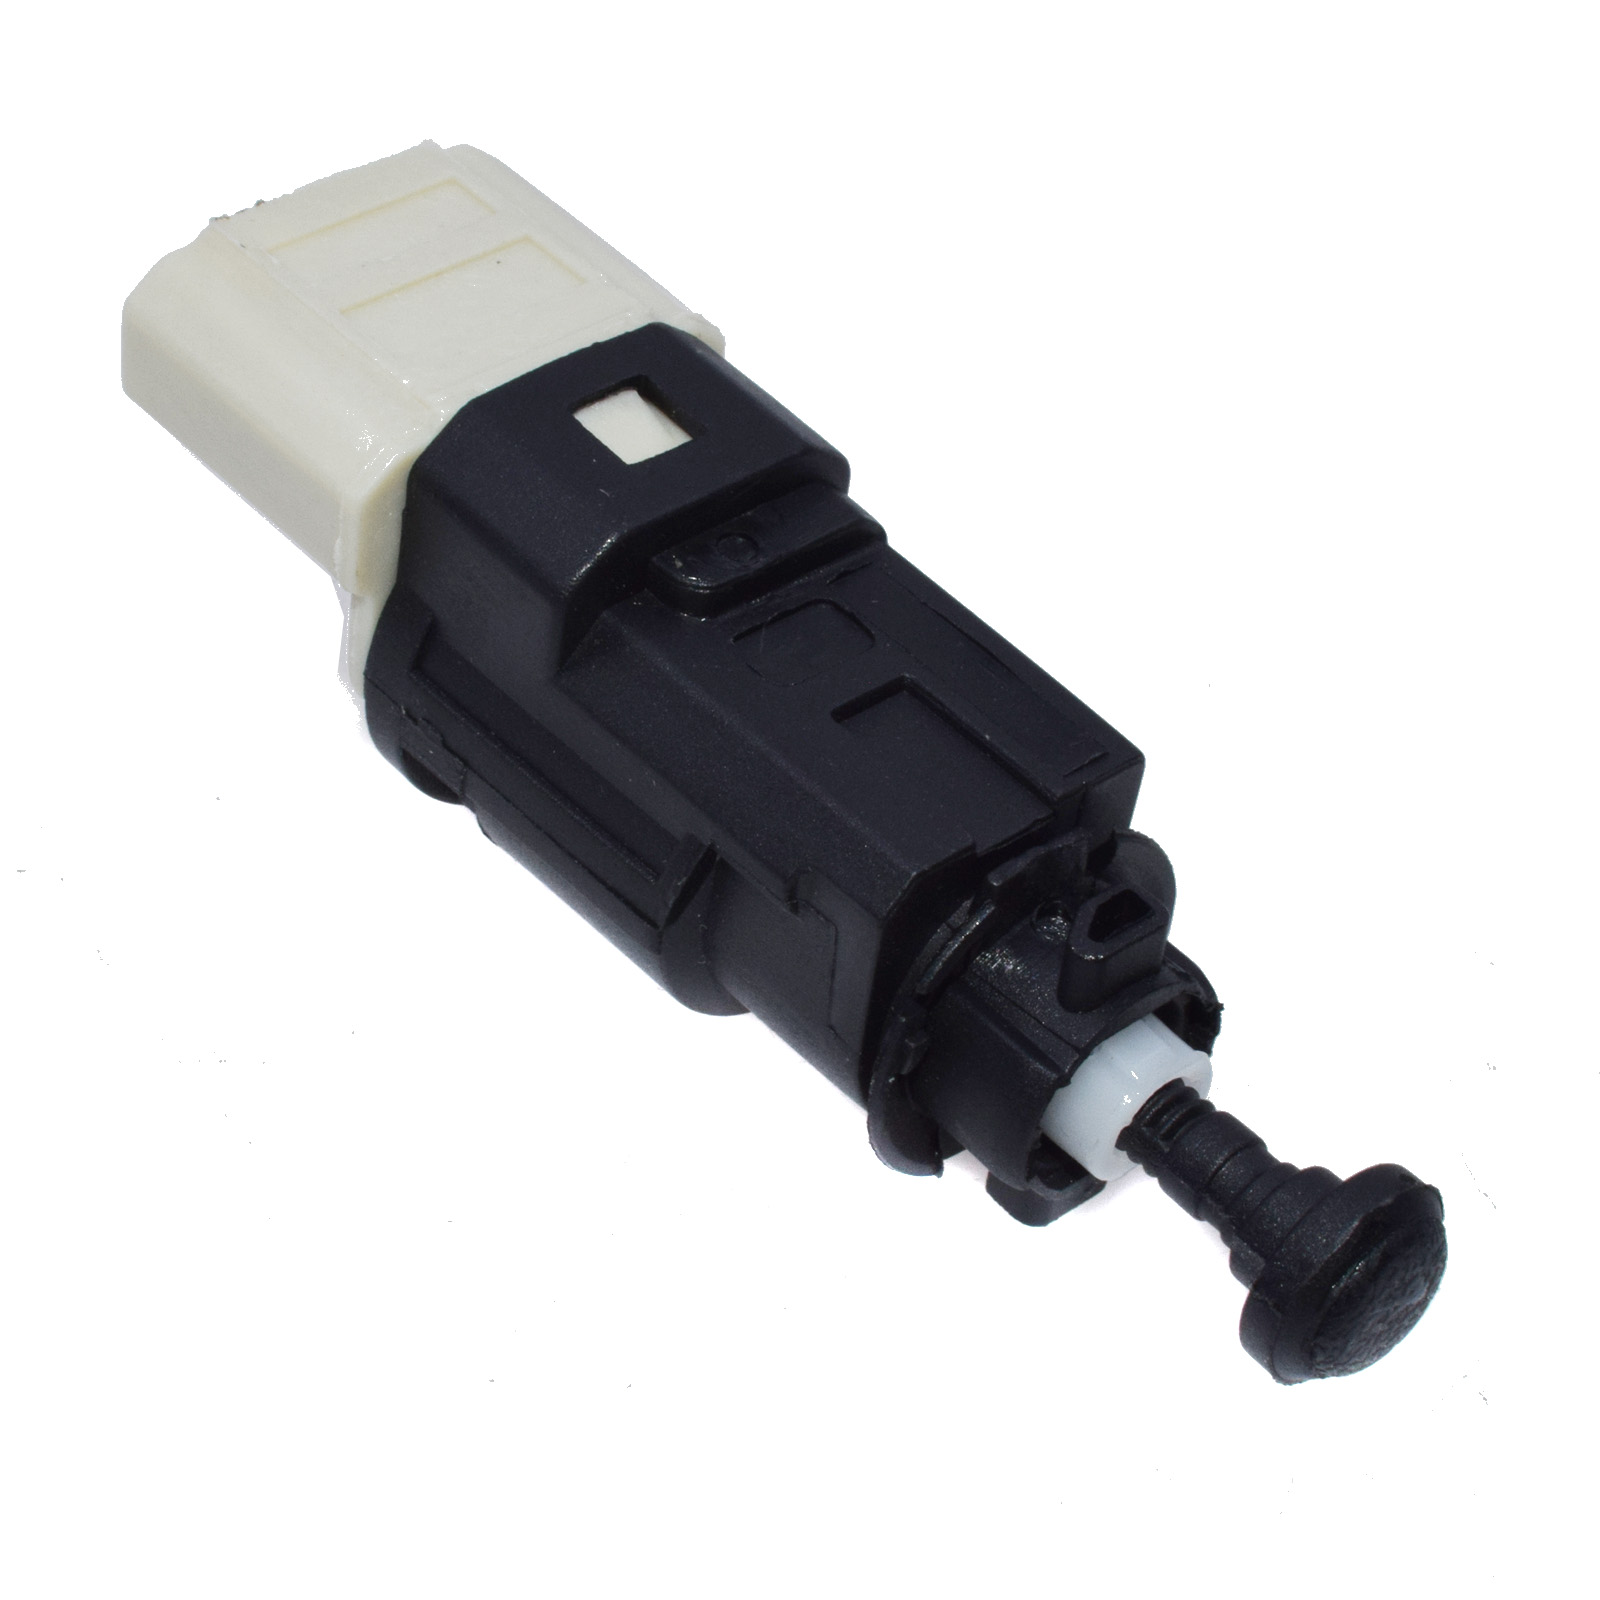 Renault Trafic 2.0 dCi 115 4 Pin Genuine Lemark Brake Light Switch